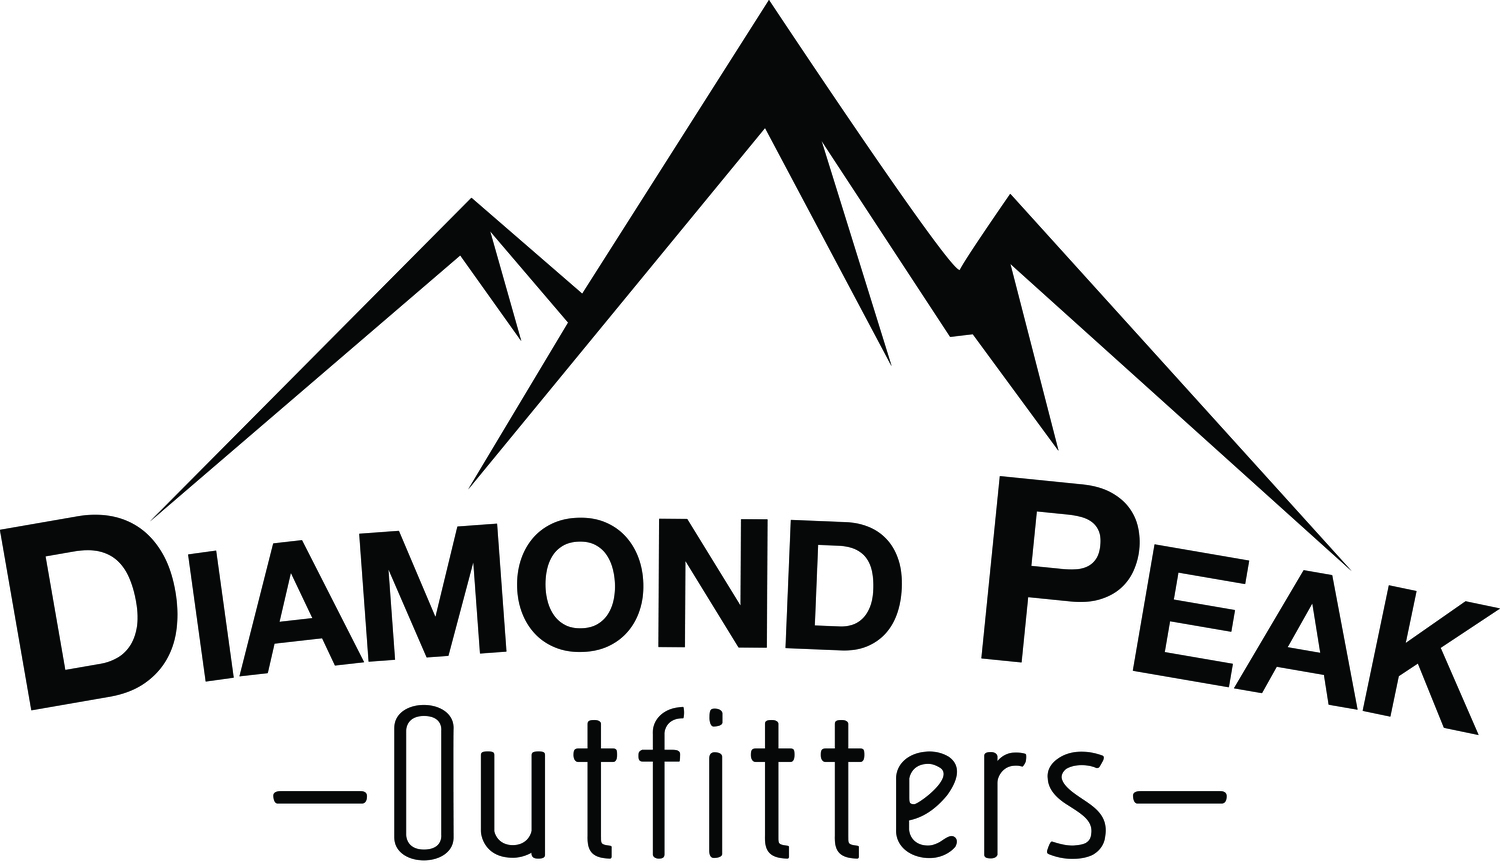 Diamond Peak Outfitters